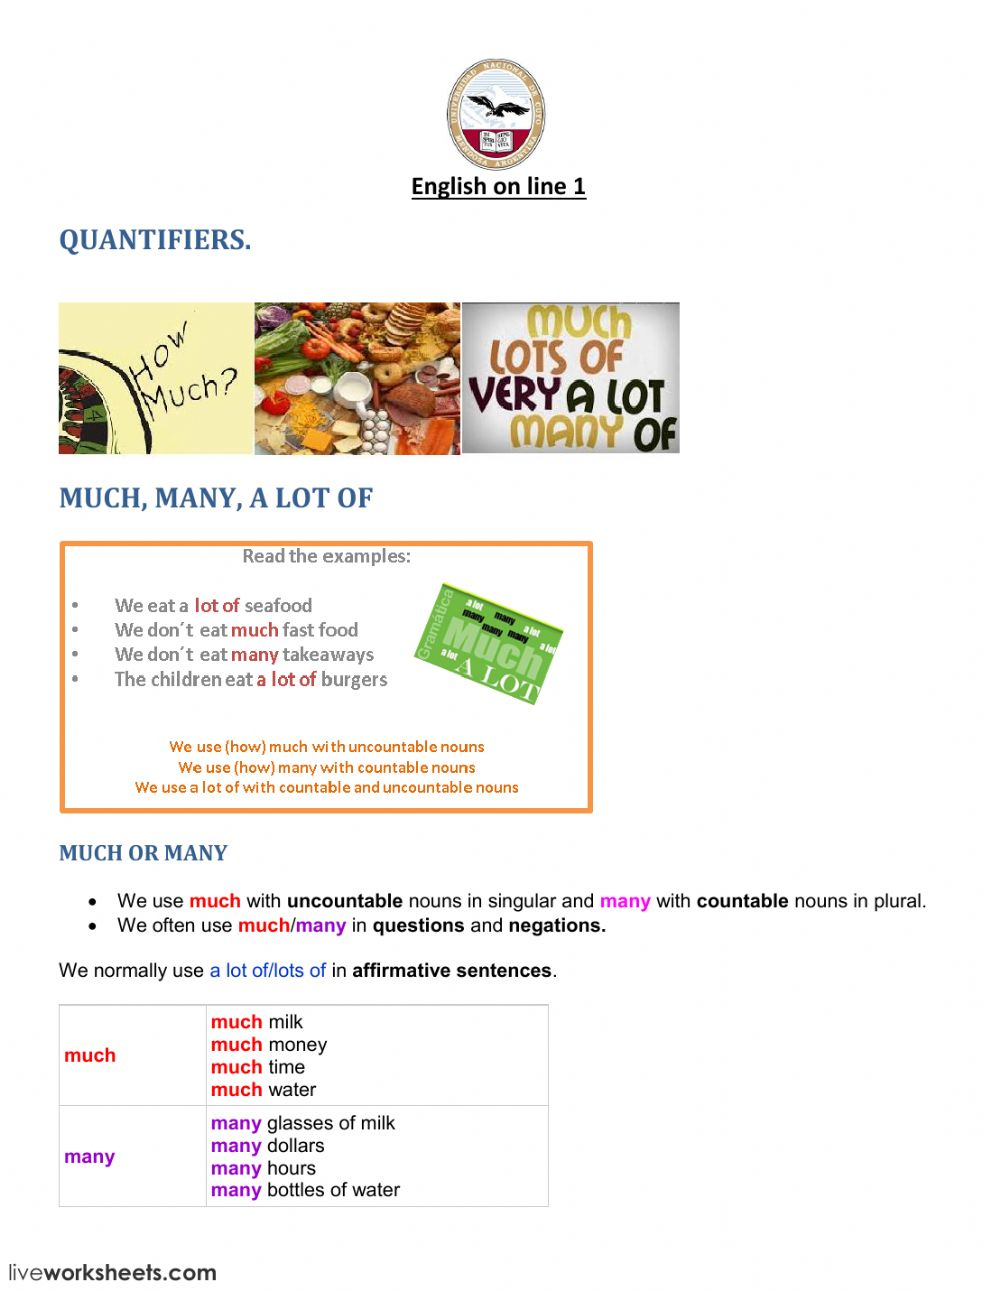 Quantifiers FM - Interactive worksheet on wedding guest list worksheets, i and me worksheets, preschool phonological awareness worksheets, some any worksheets, skip counting worksheets, double negatives worksheets, have has worksheets, preschool community helpers worksheets, was were worksheets, can and may worksheets,